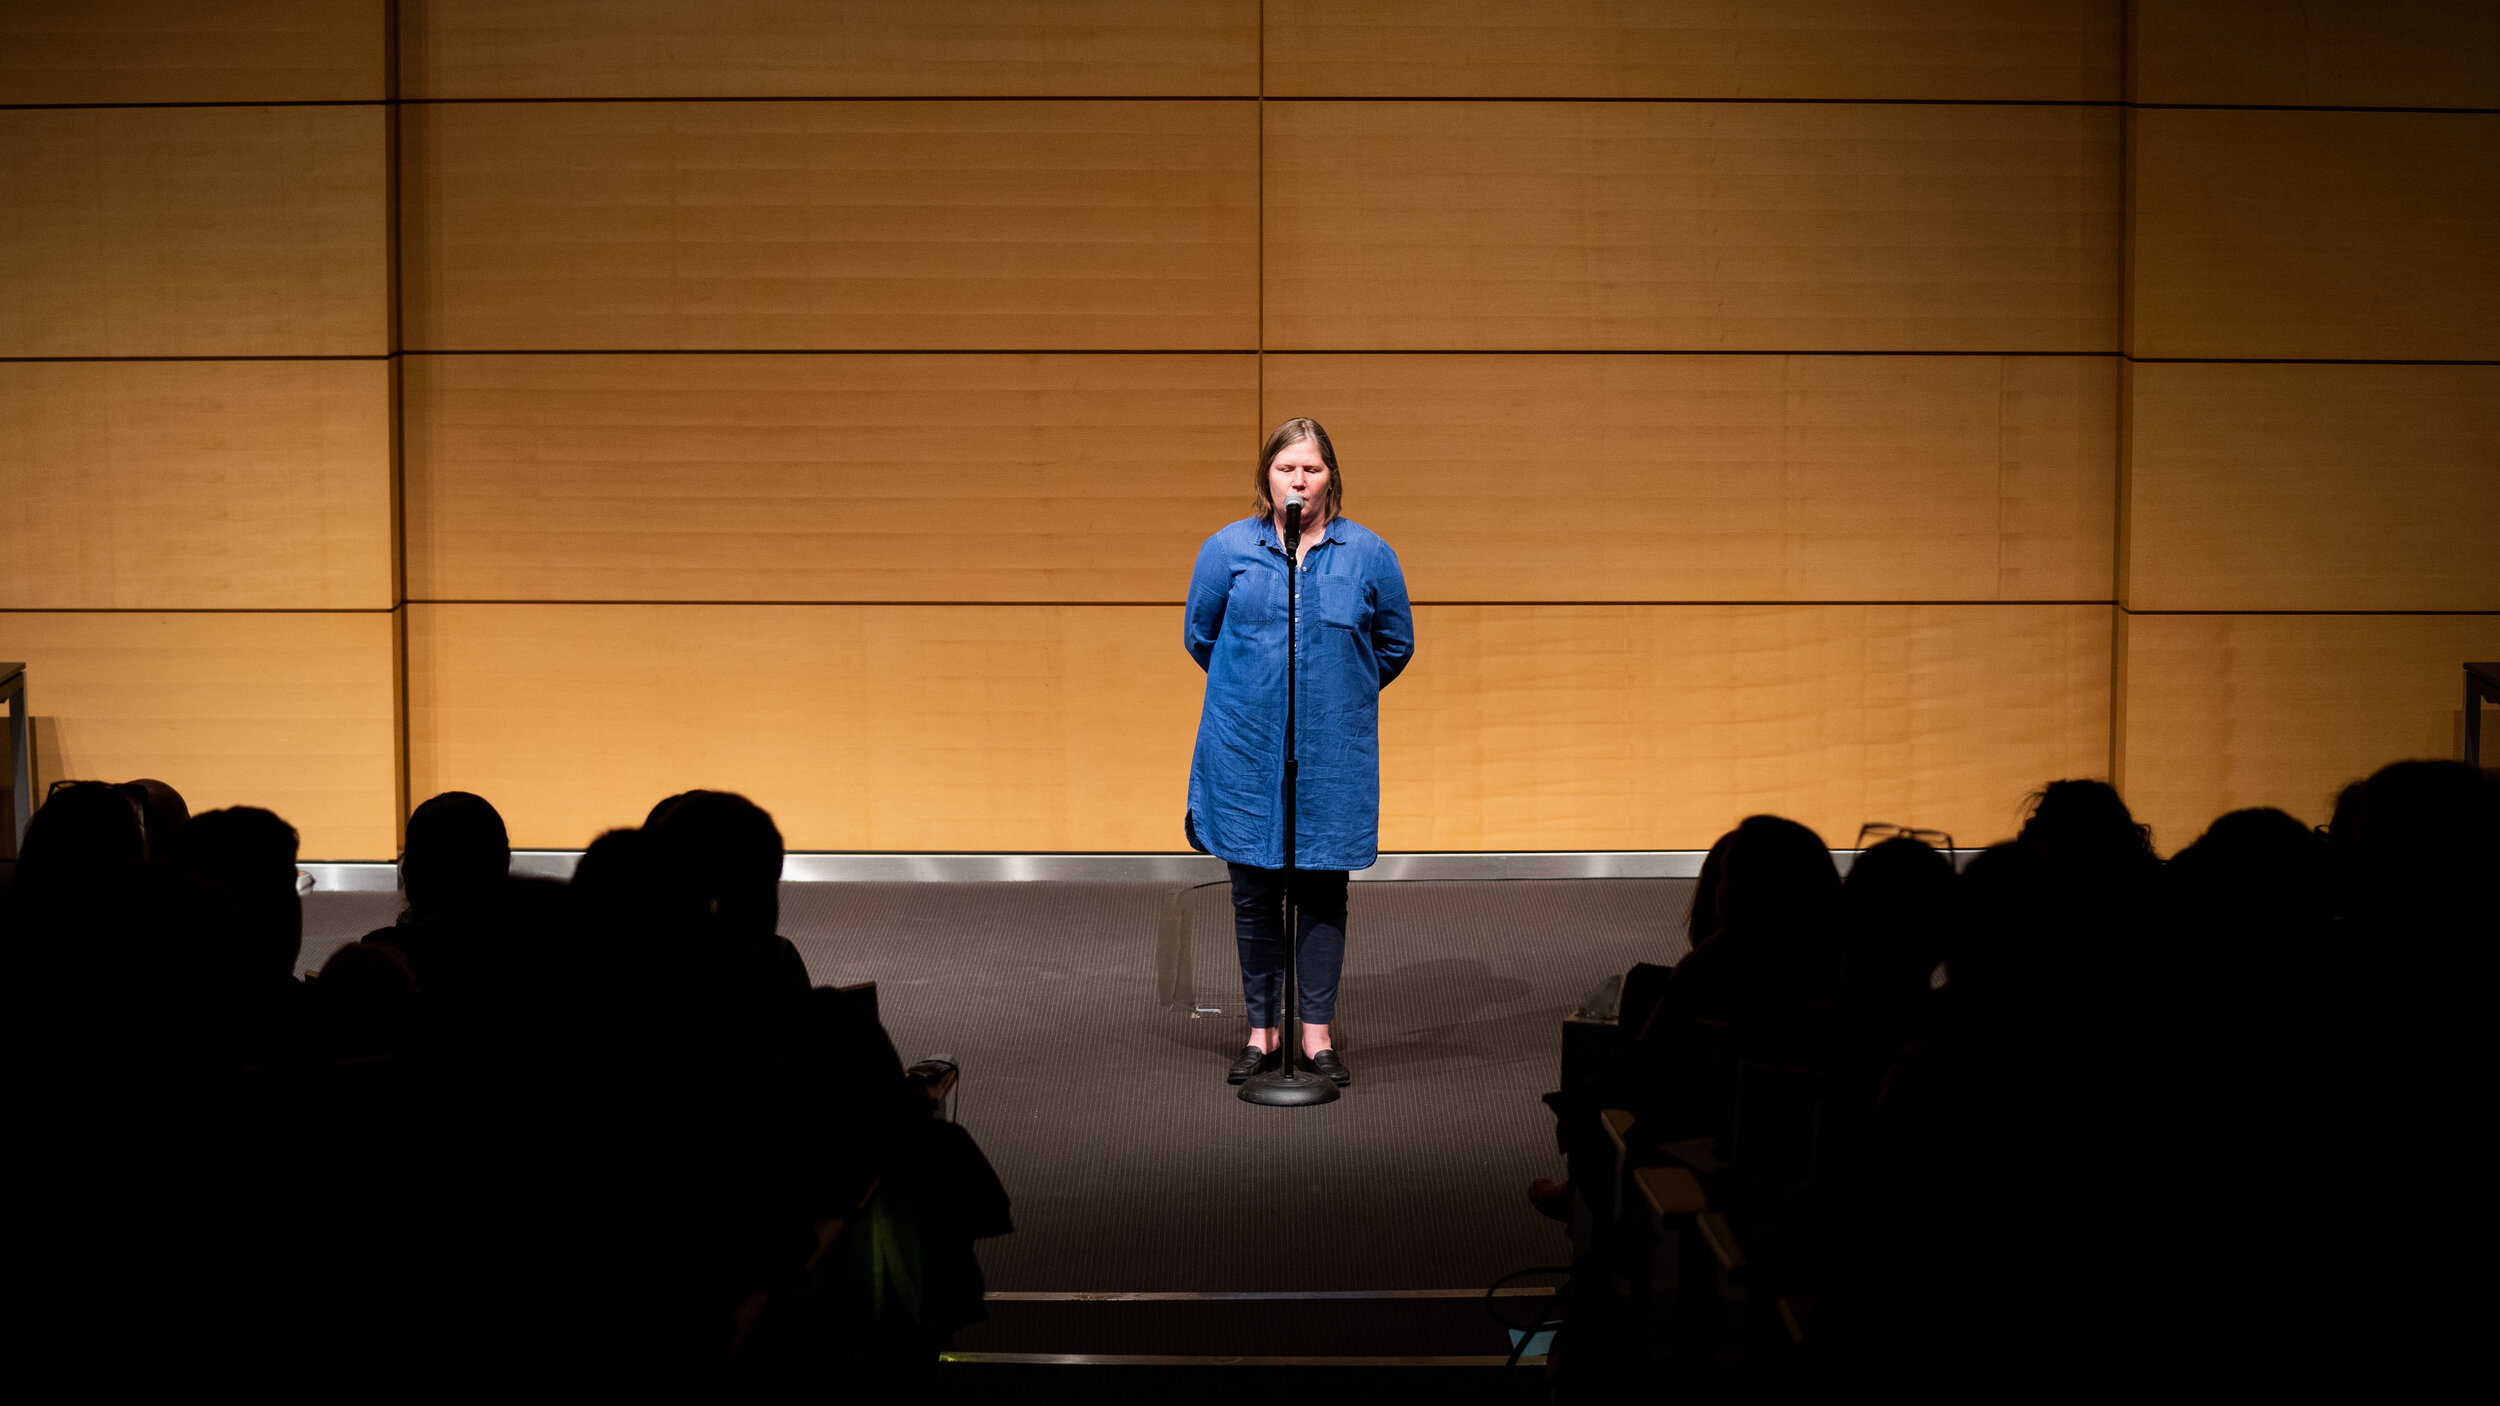 Kristine Lycke shares her story with the Story Collider audience as a show presented in partnership with Memorial Sloan Kettering in New York City in December 2018. Photo by Zhen Qin.